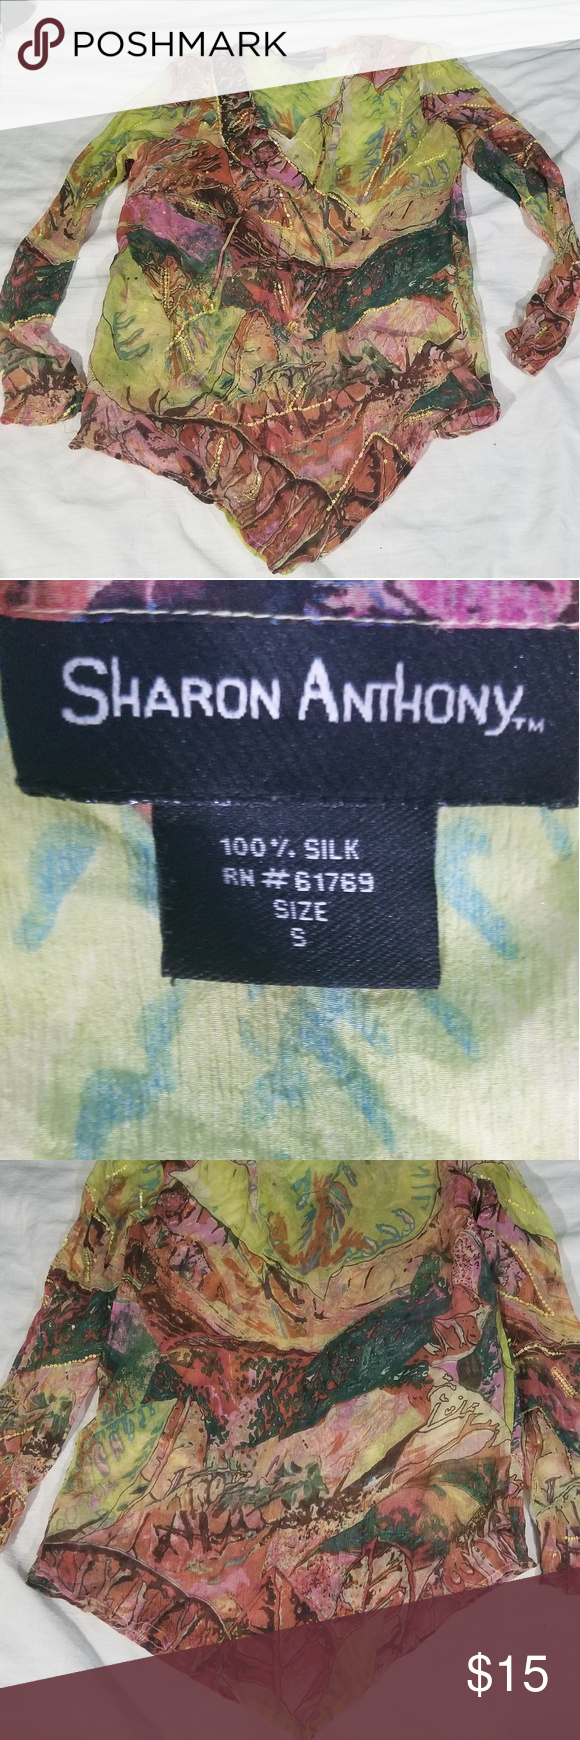 Sharon Anthony sheer silk top size small Sharon Anthony